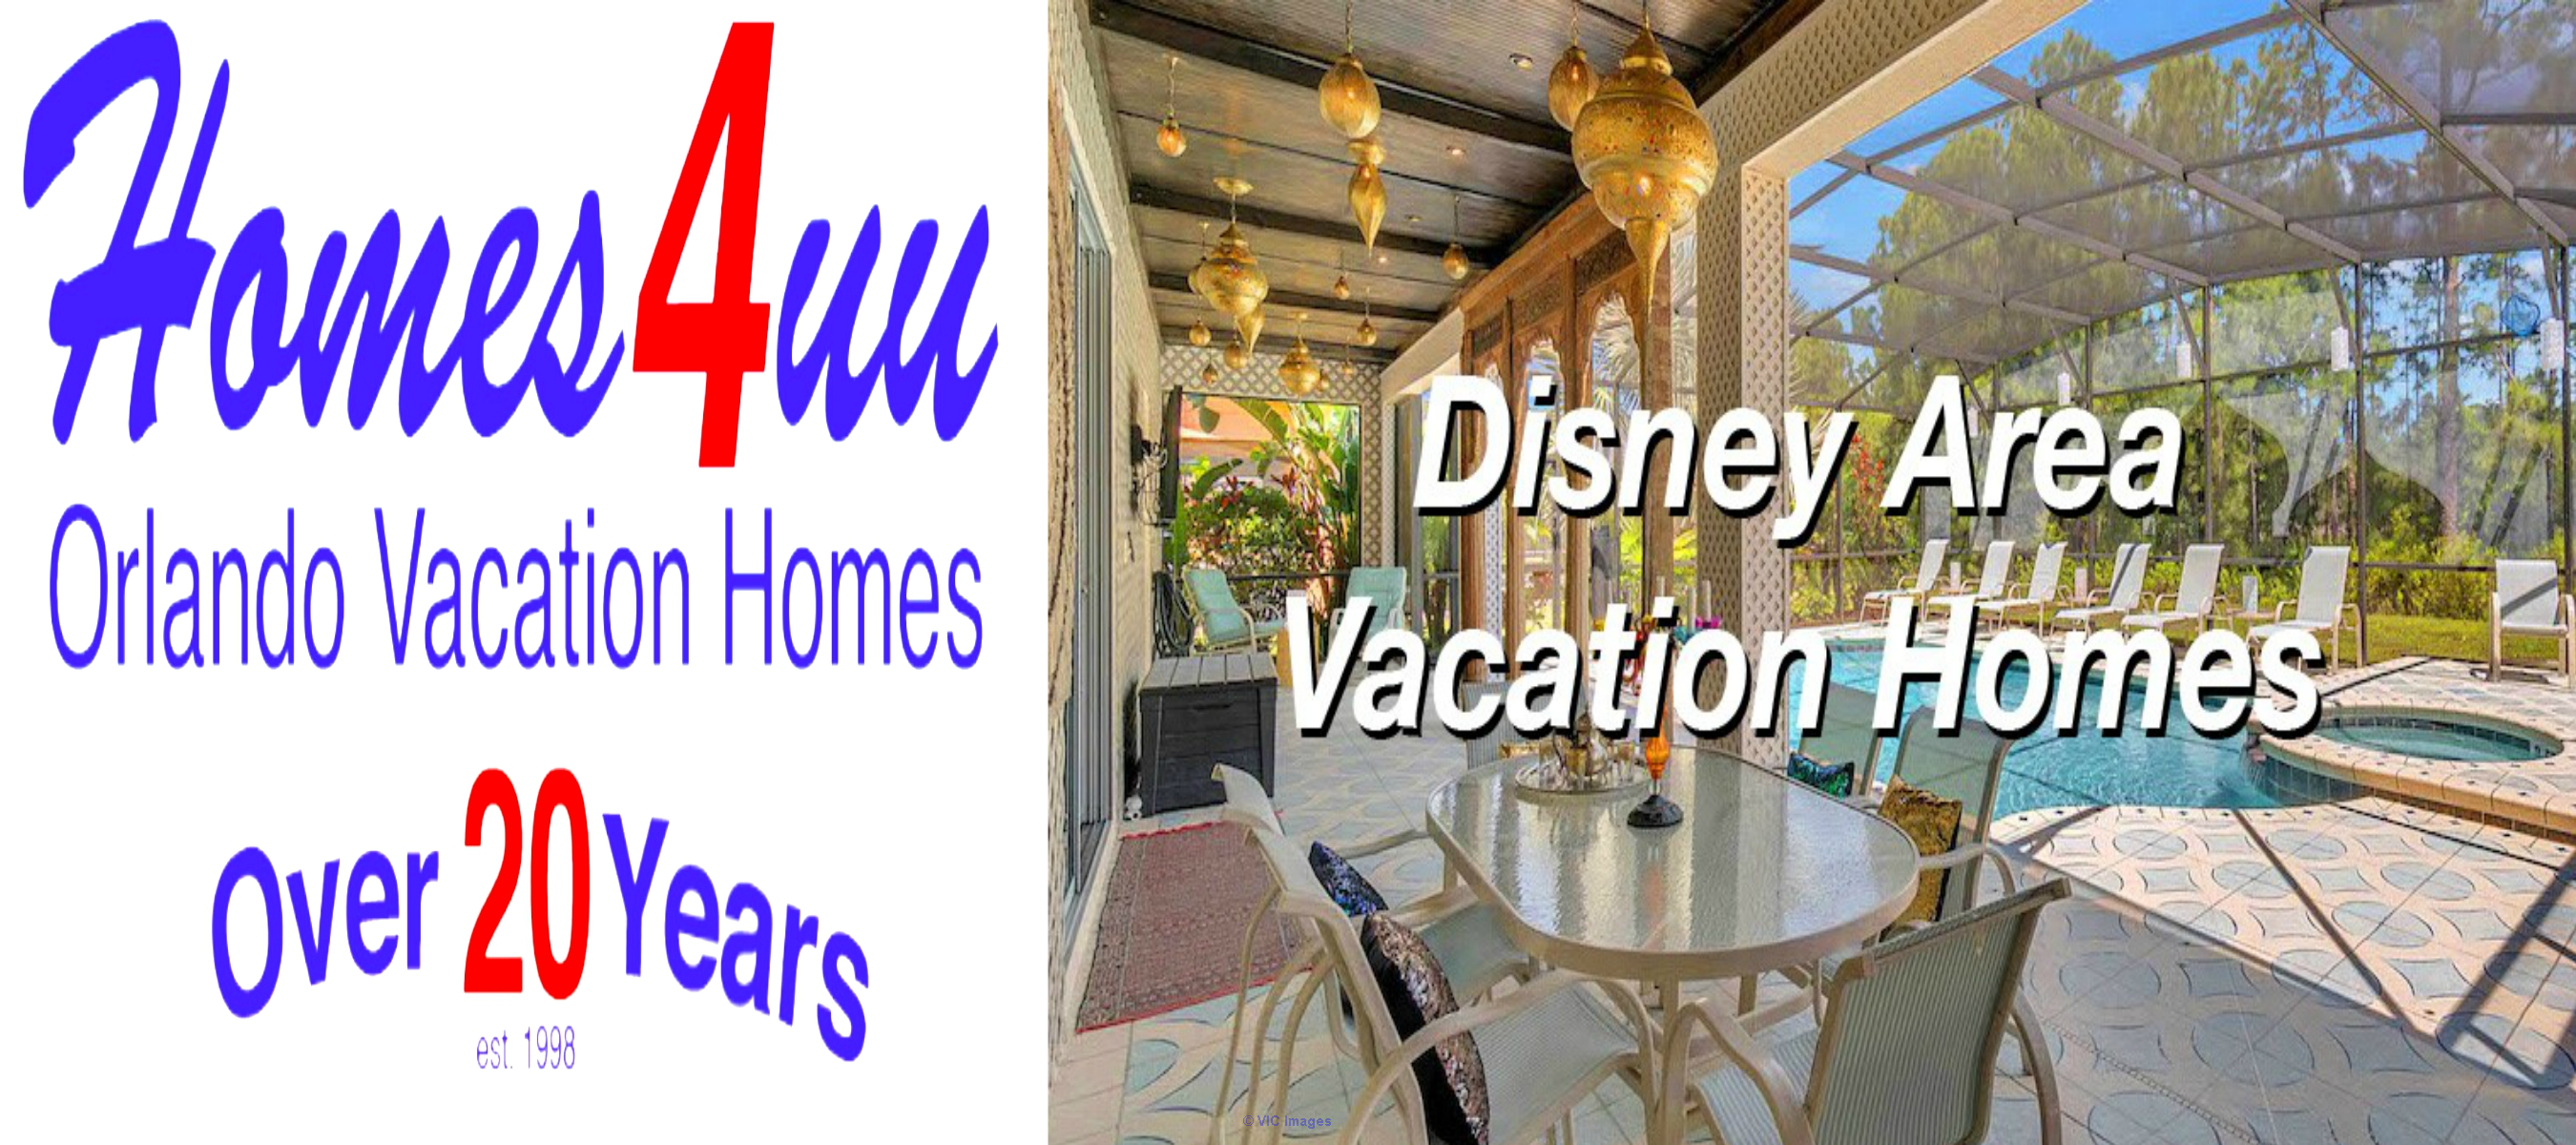 Homes4uu Orlando Vacation Packages